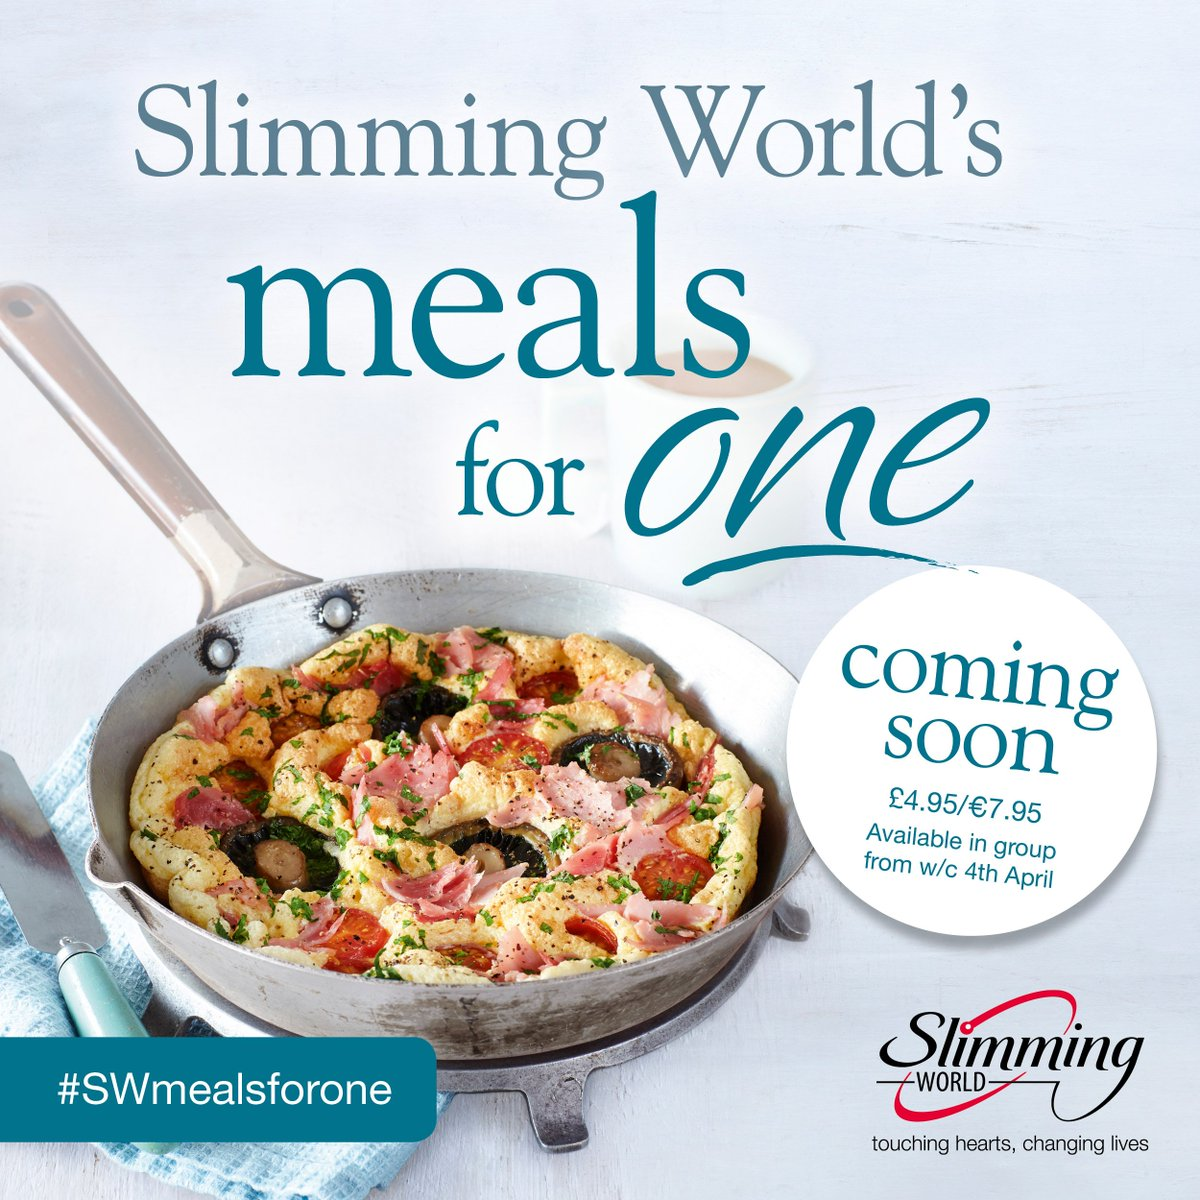 Slimming world on twitter packed with 60 super simple recipes you 39 ll love our new recipe book Simple slimming world meals